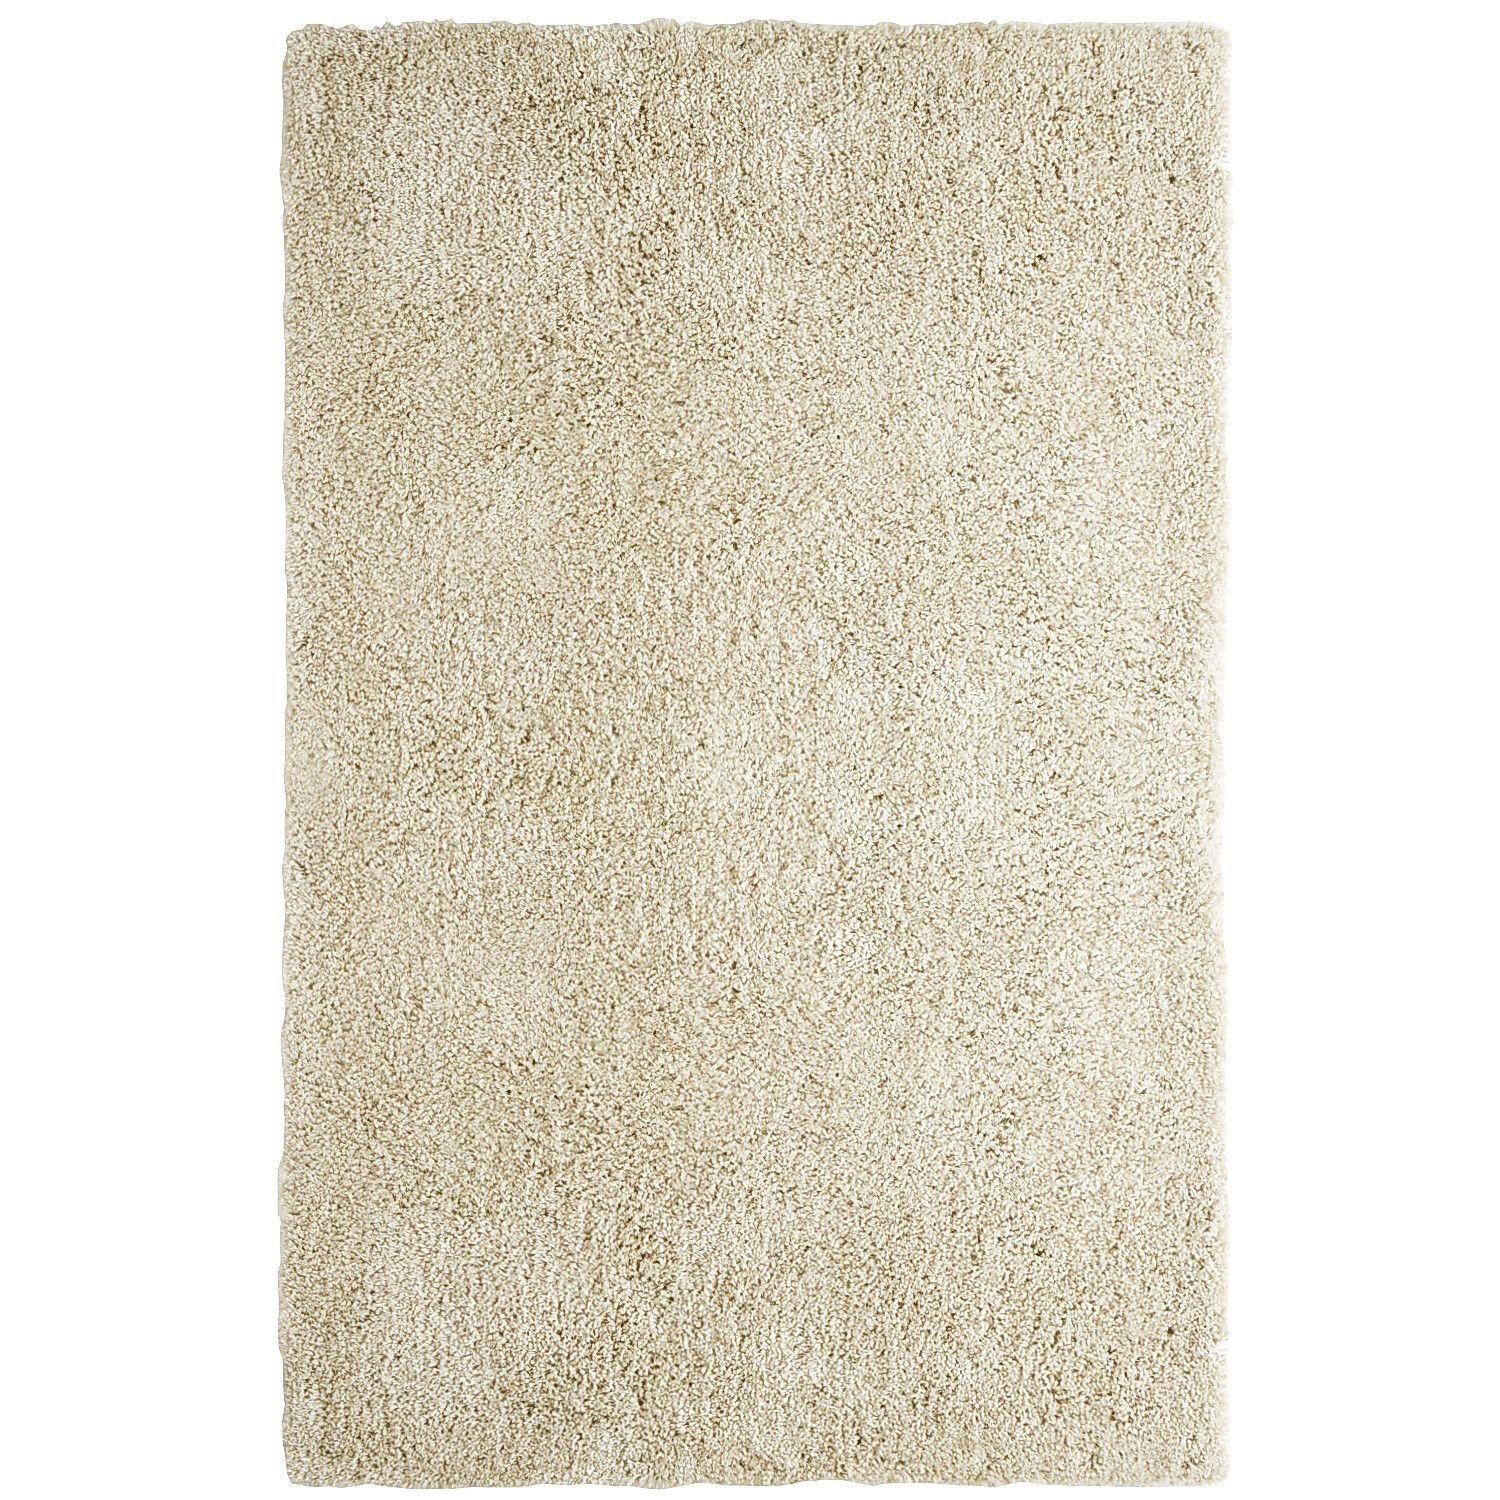 Furry Rugs for Bedroom Unique Oyster Shag Rug